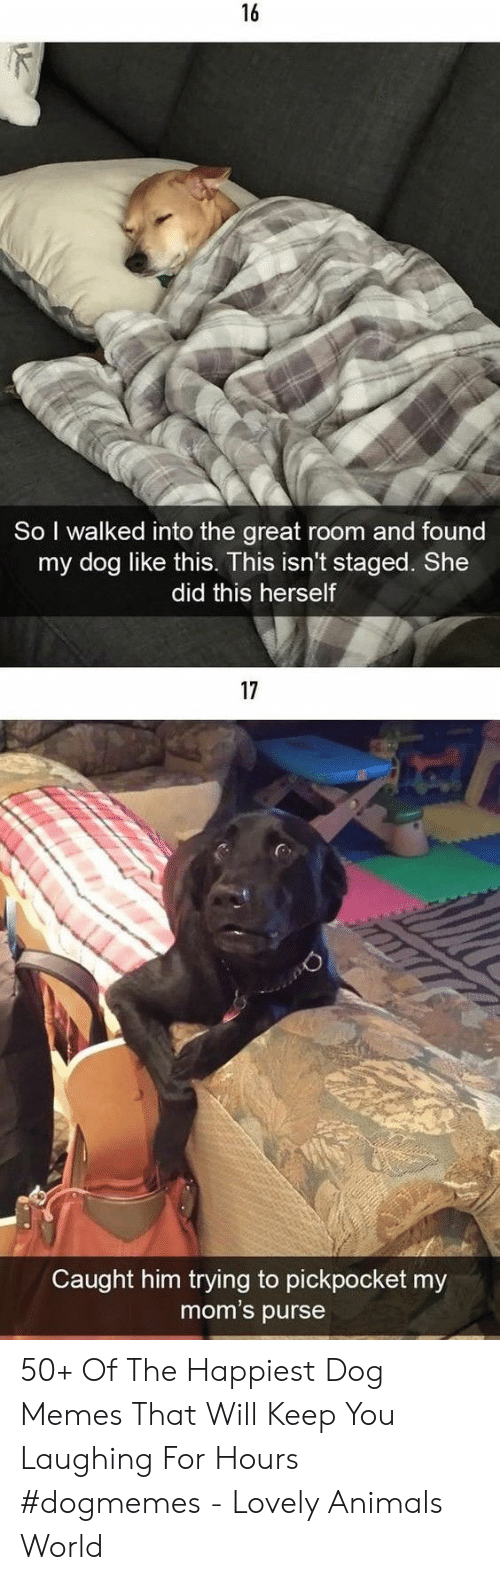 purse: 16  So I walked into the great room and found  my dog like this. This isn't staged. She  did this herself  17  Caught him trying to pickpocket my  mom's purse 50+ Of The Happiest Dog Memes That Will Keep You Laughing For Hours #dogmemes - Lovely Animals World